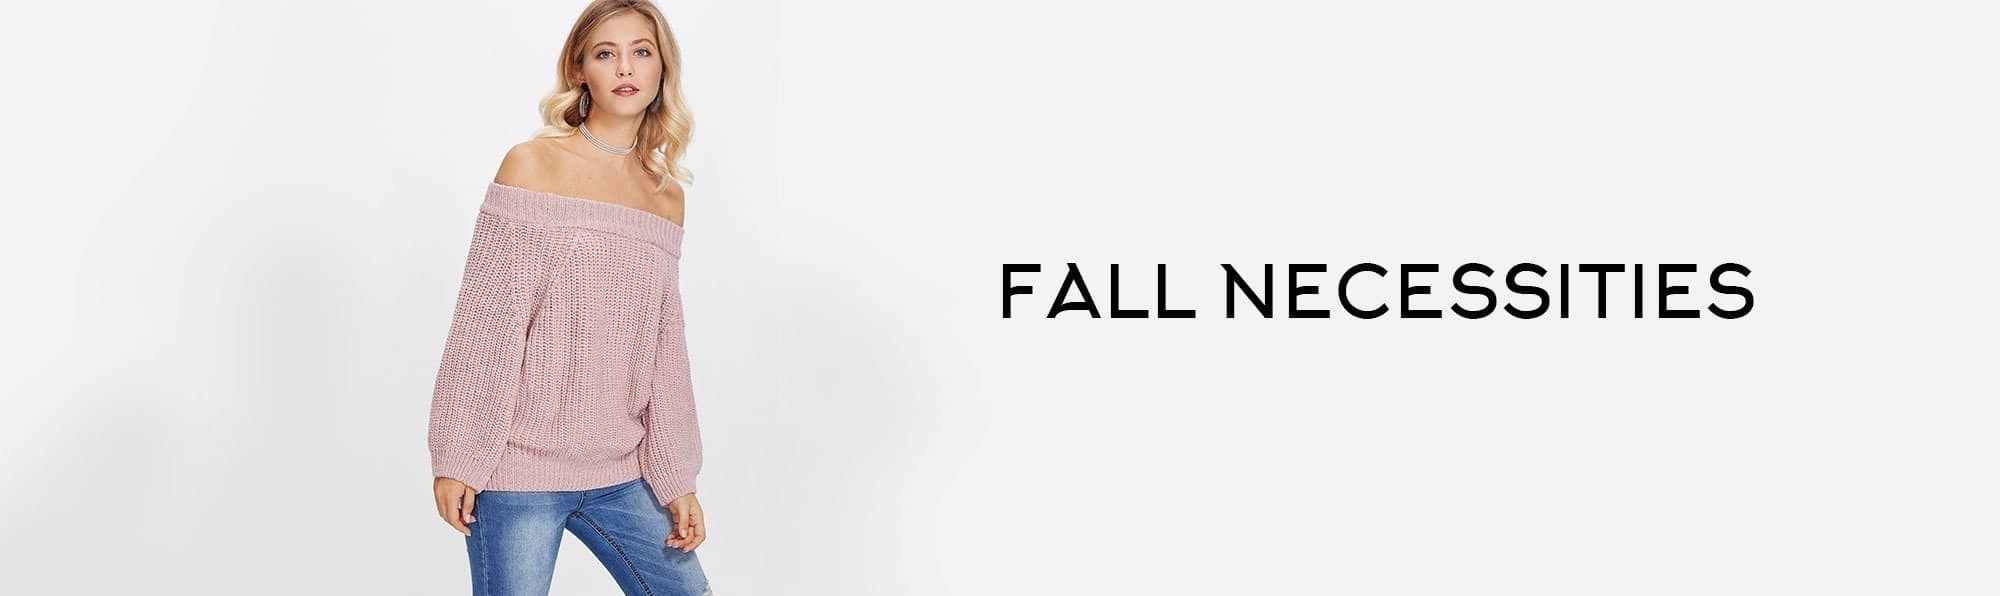 US FallCollection 20171016